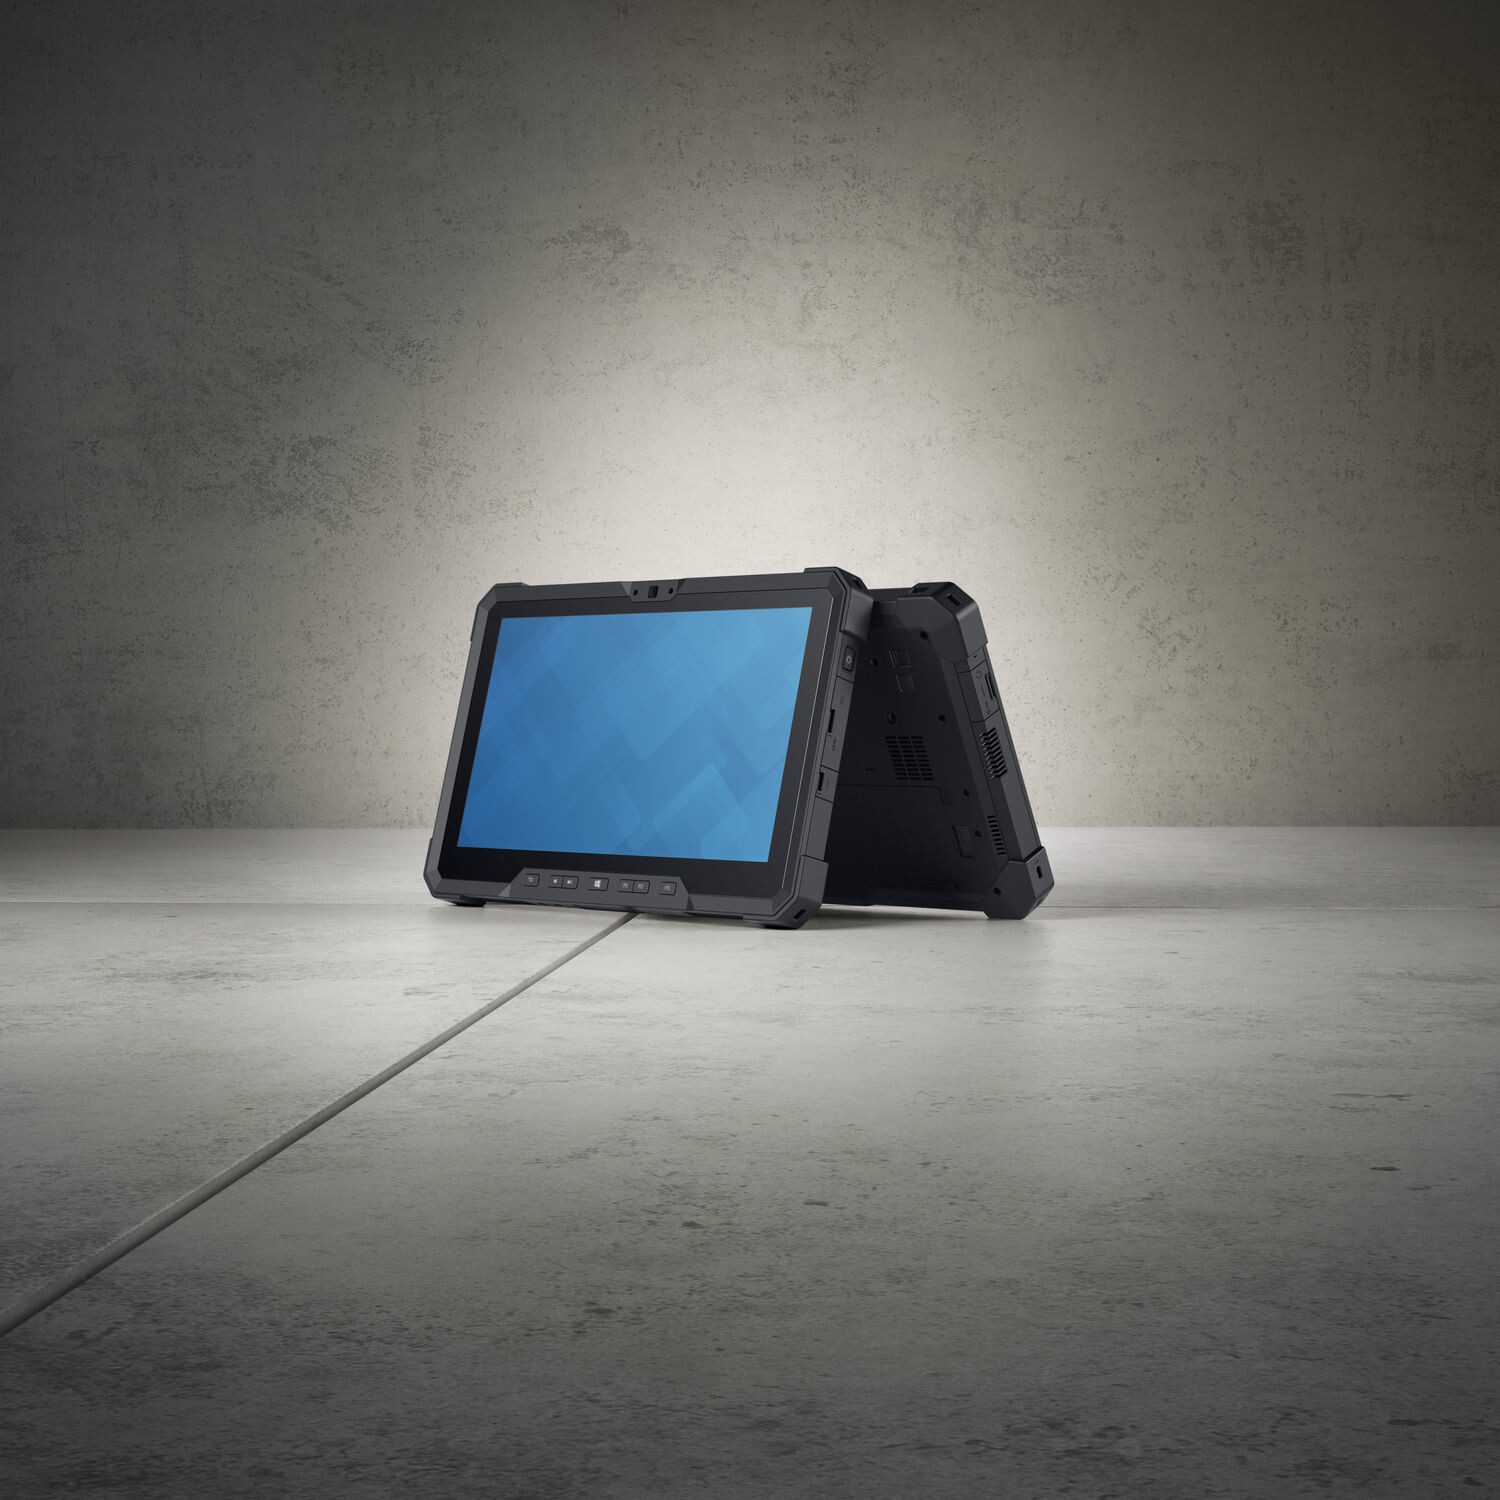 w tab ikey dell at for latitude keyboard angle ik rugged attachable extreme rug product side